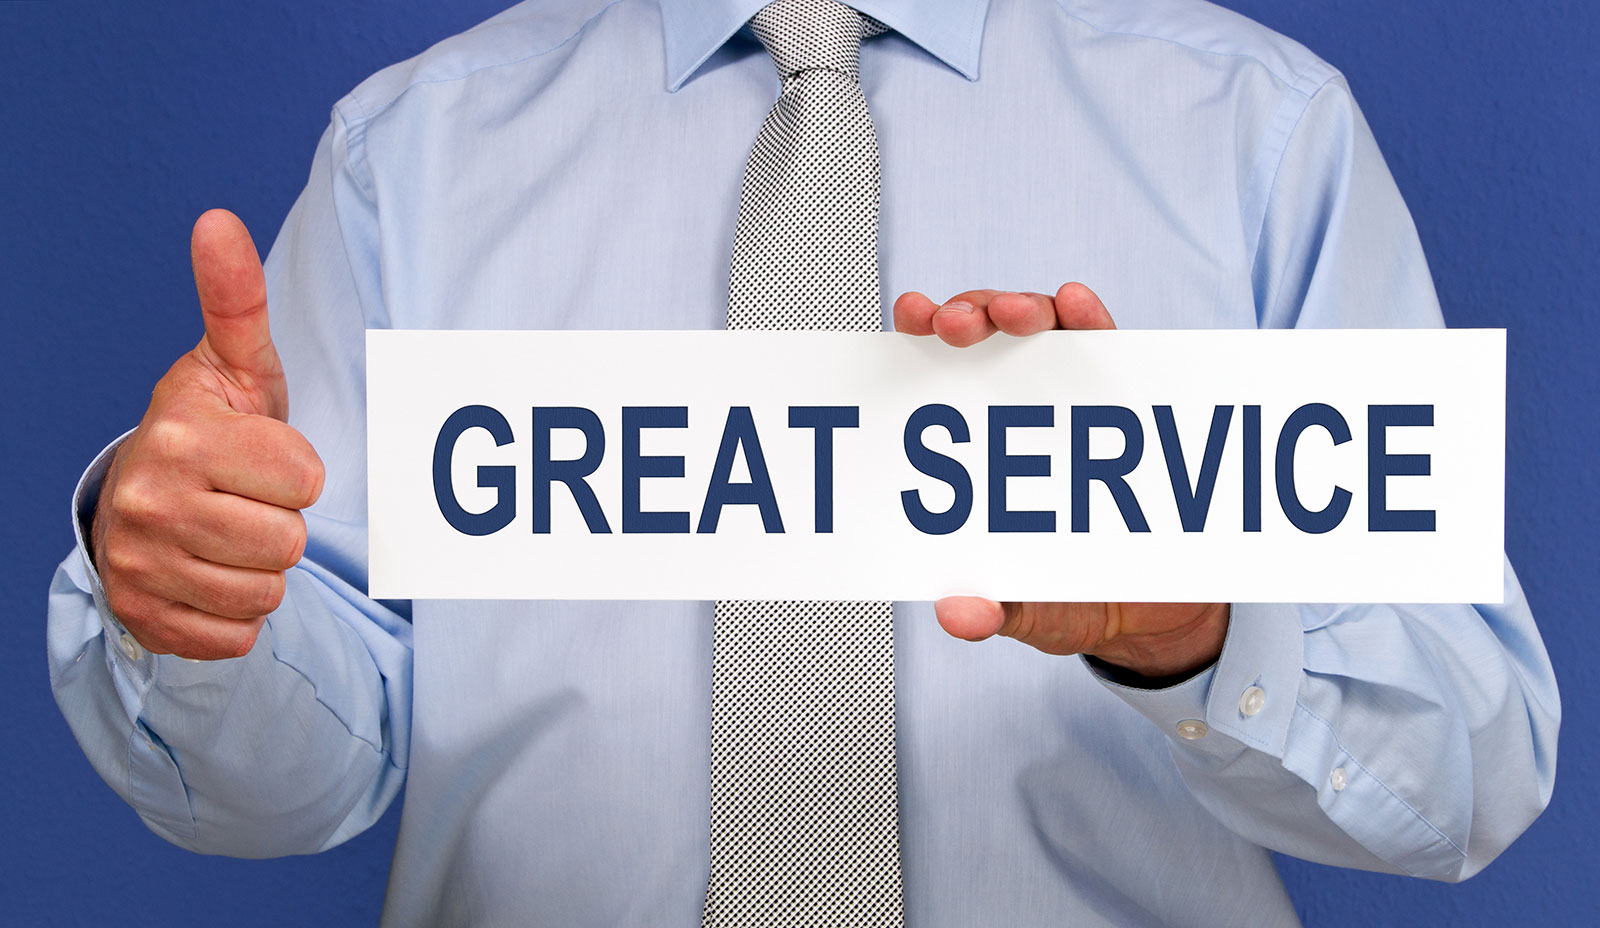 What Are the Four Components of Great Service?